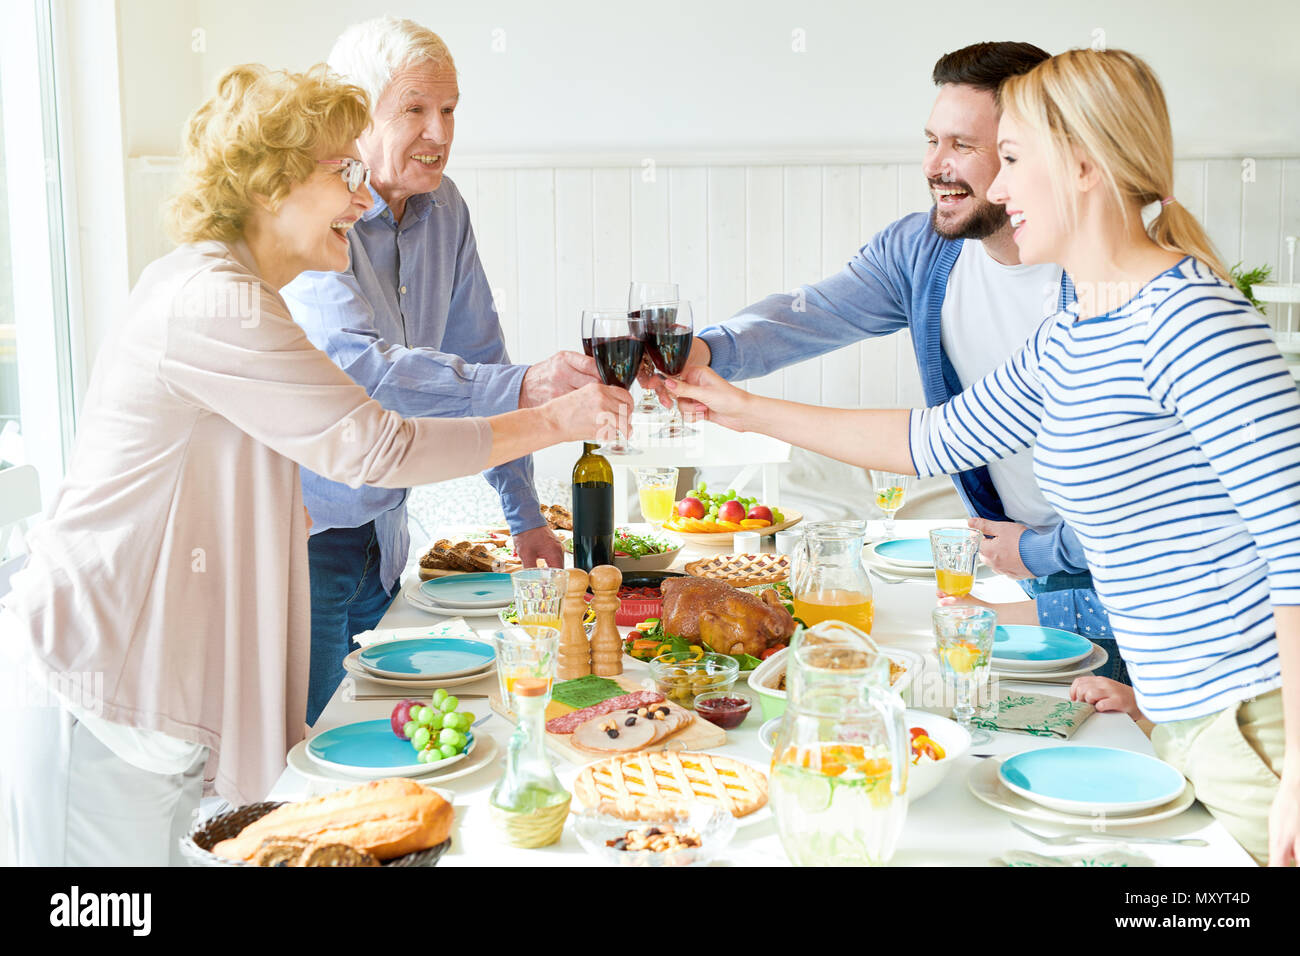 Side view portrait of happy two generation family enjoying dinner together clinking glasses at festive table with delicious dishes and smiling during  - Stock Image